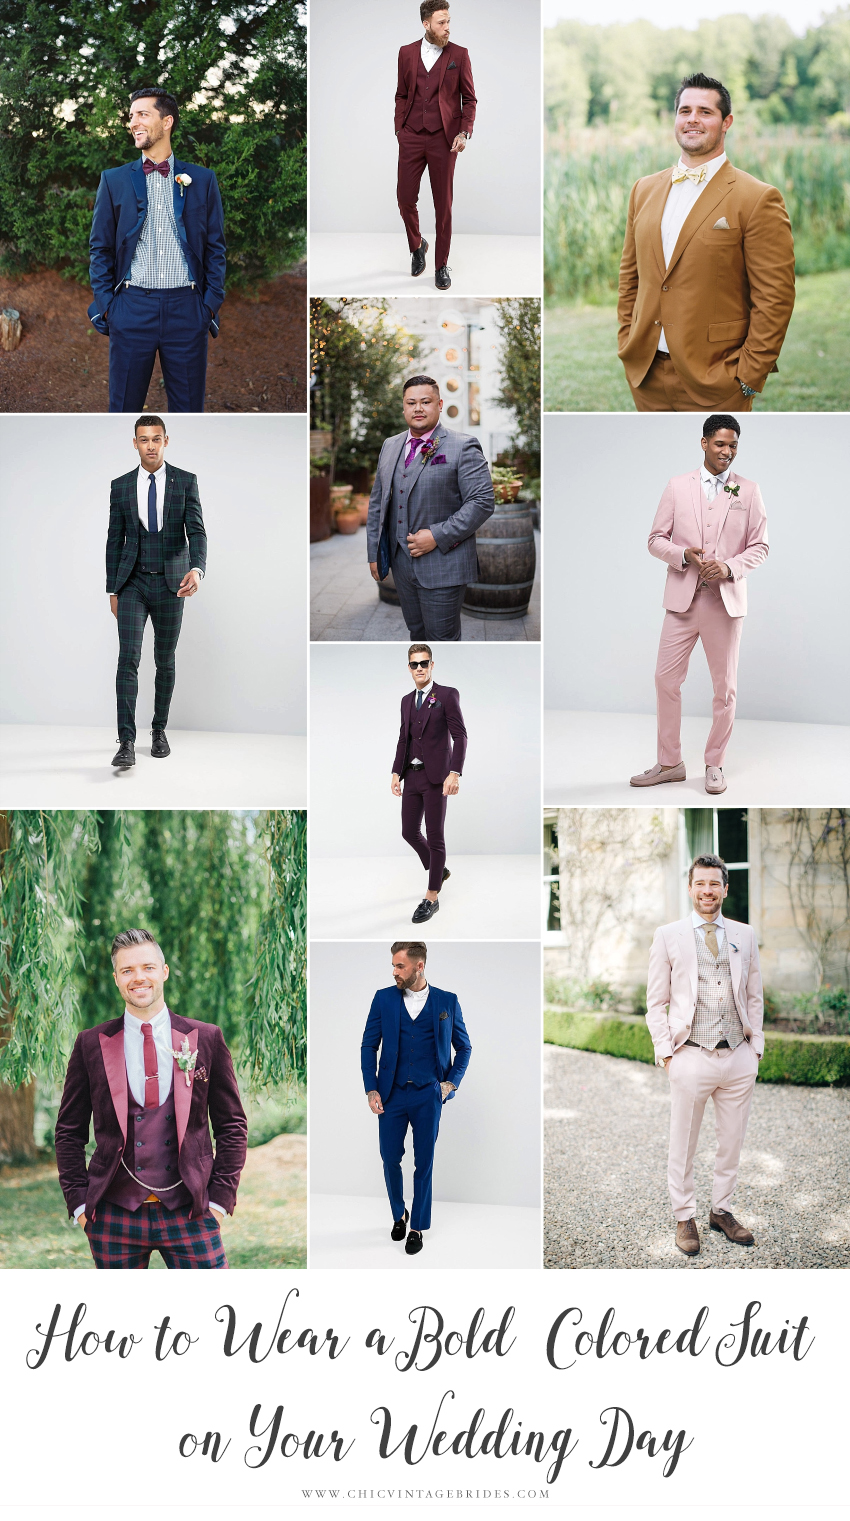 How to Wear a Bold Coloured Suit on Your Wedding Day